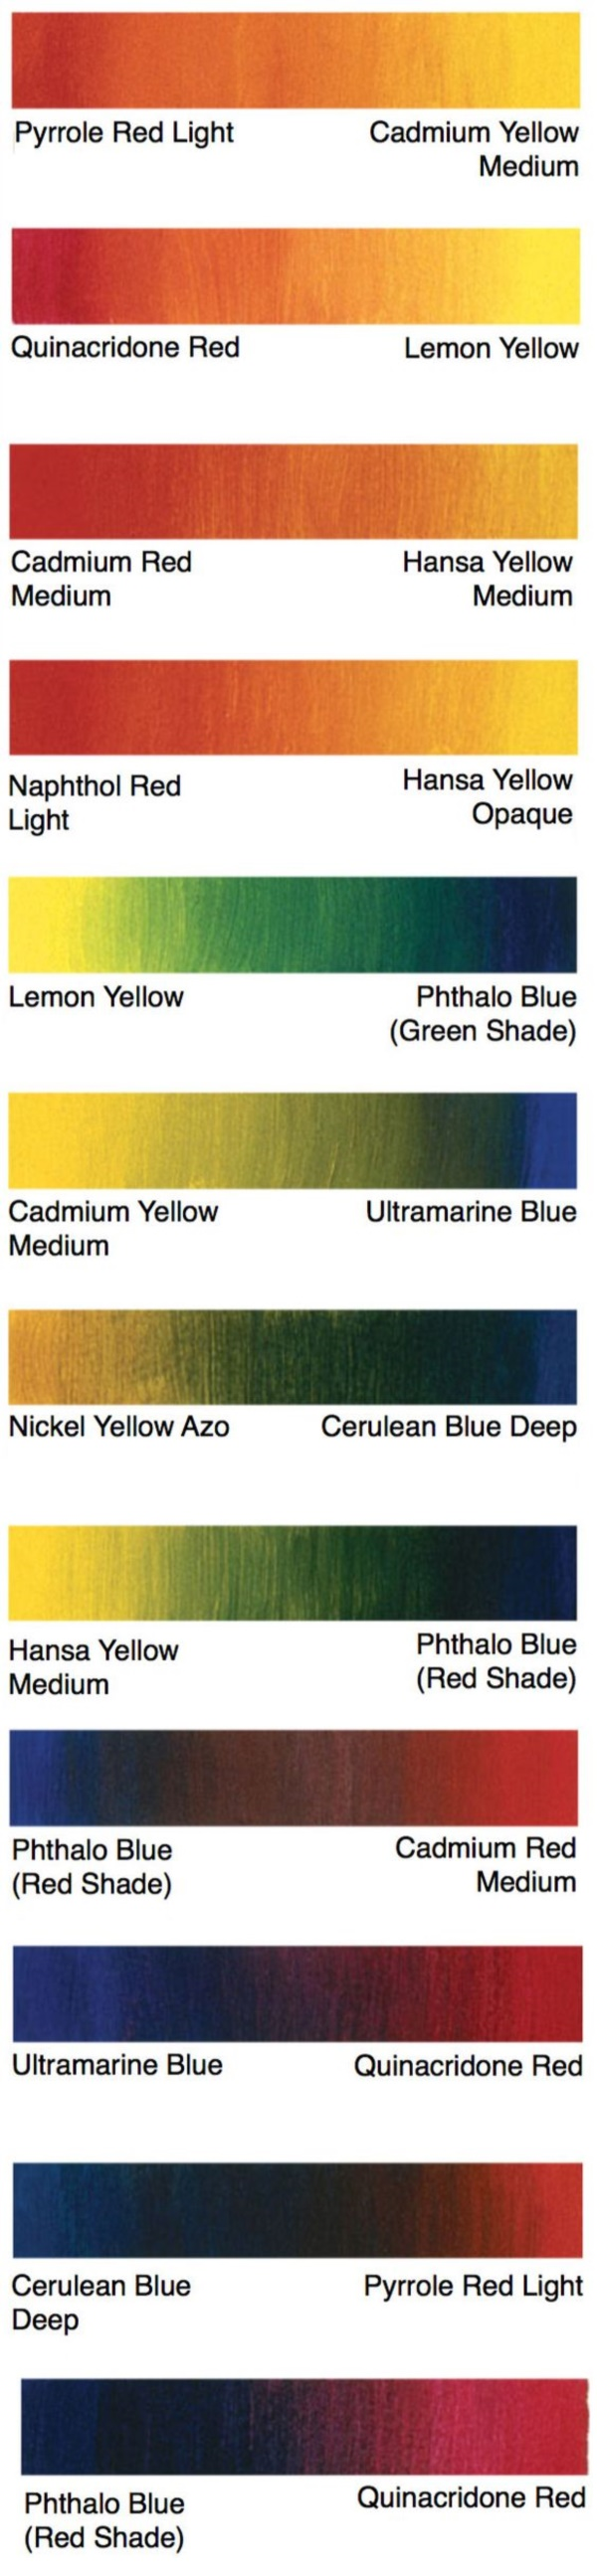 practically-useful-color-mixing-charts0071